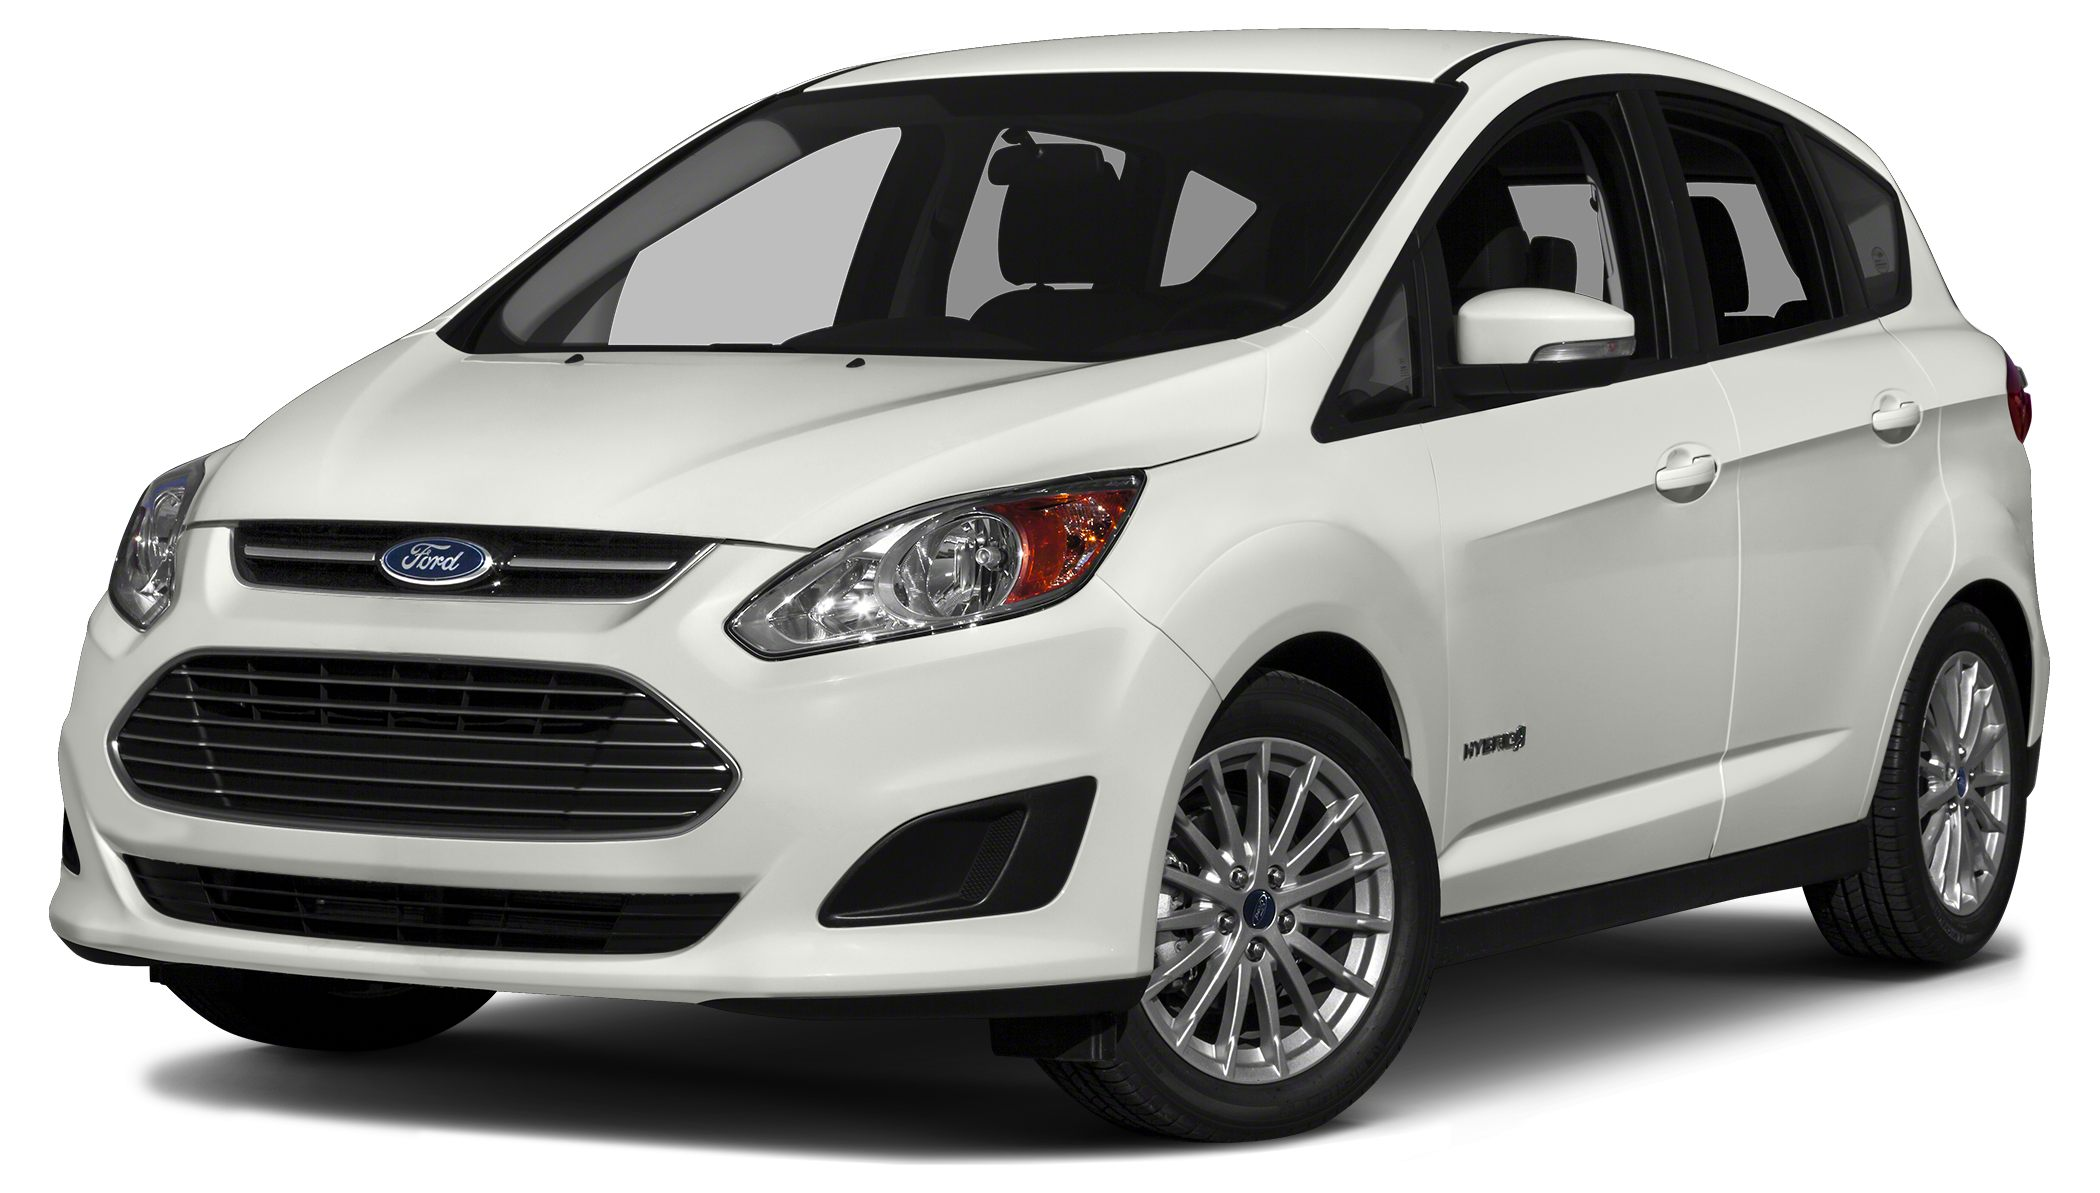 2016 Ford C-Max Hybrid SEL The C-MAX Hybrid and C-MAX Energi plug-in hybrid - the all-new family o